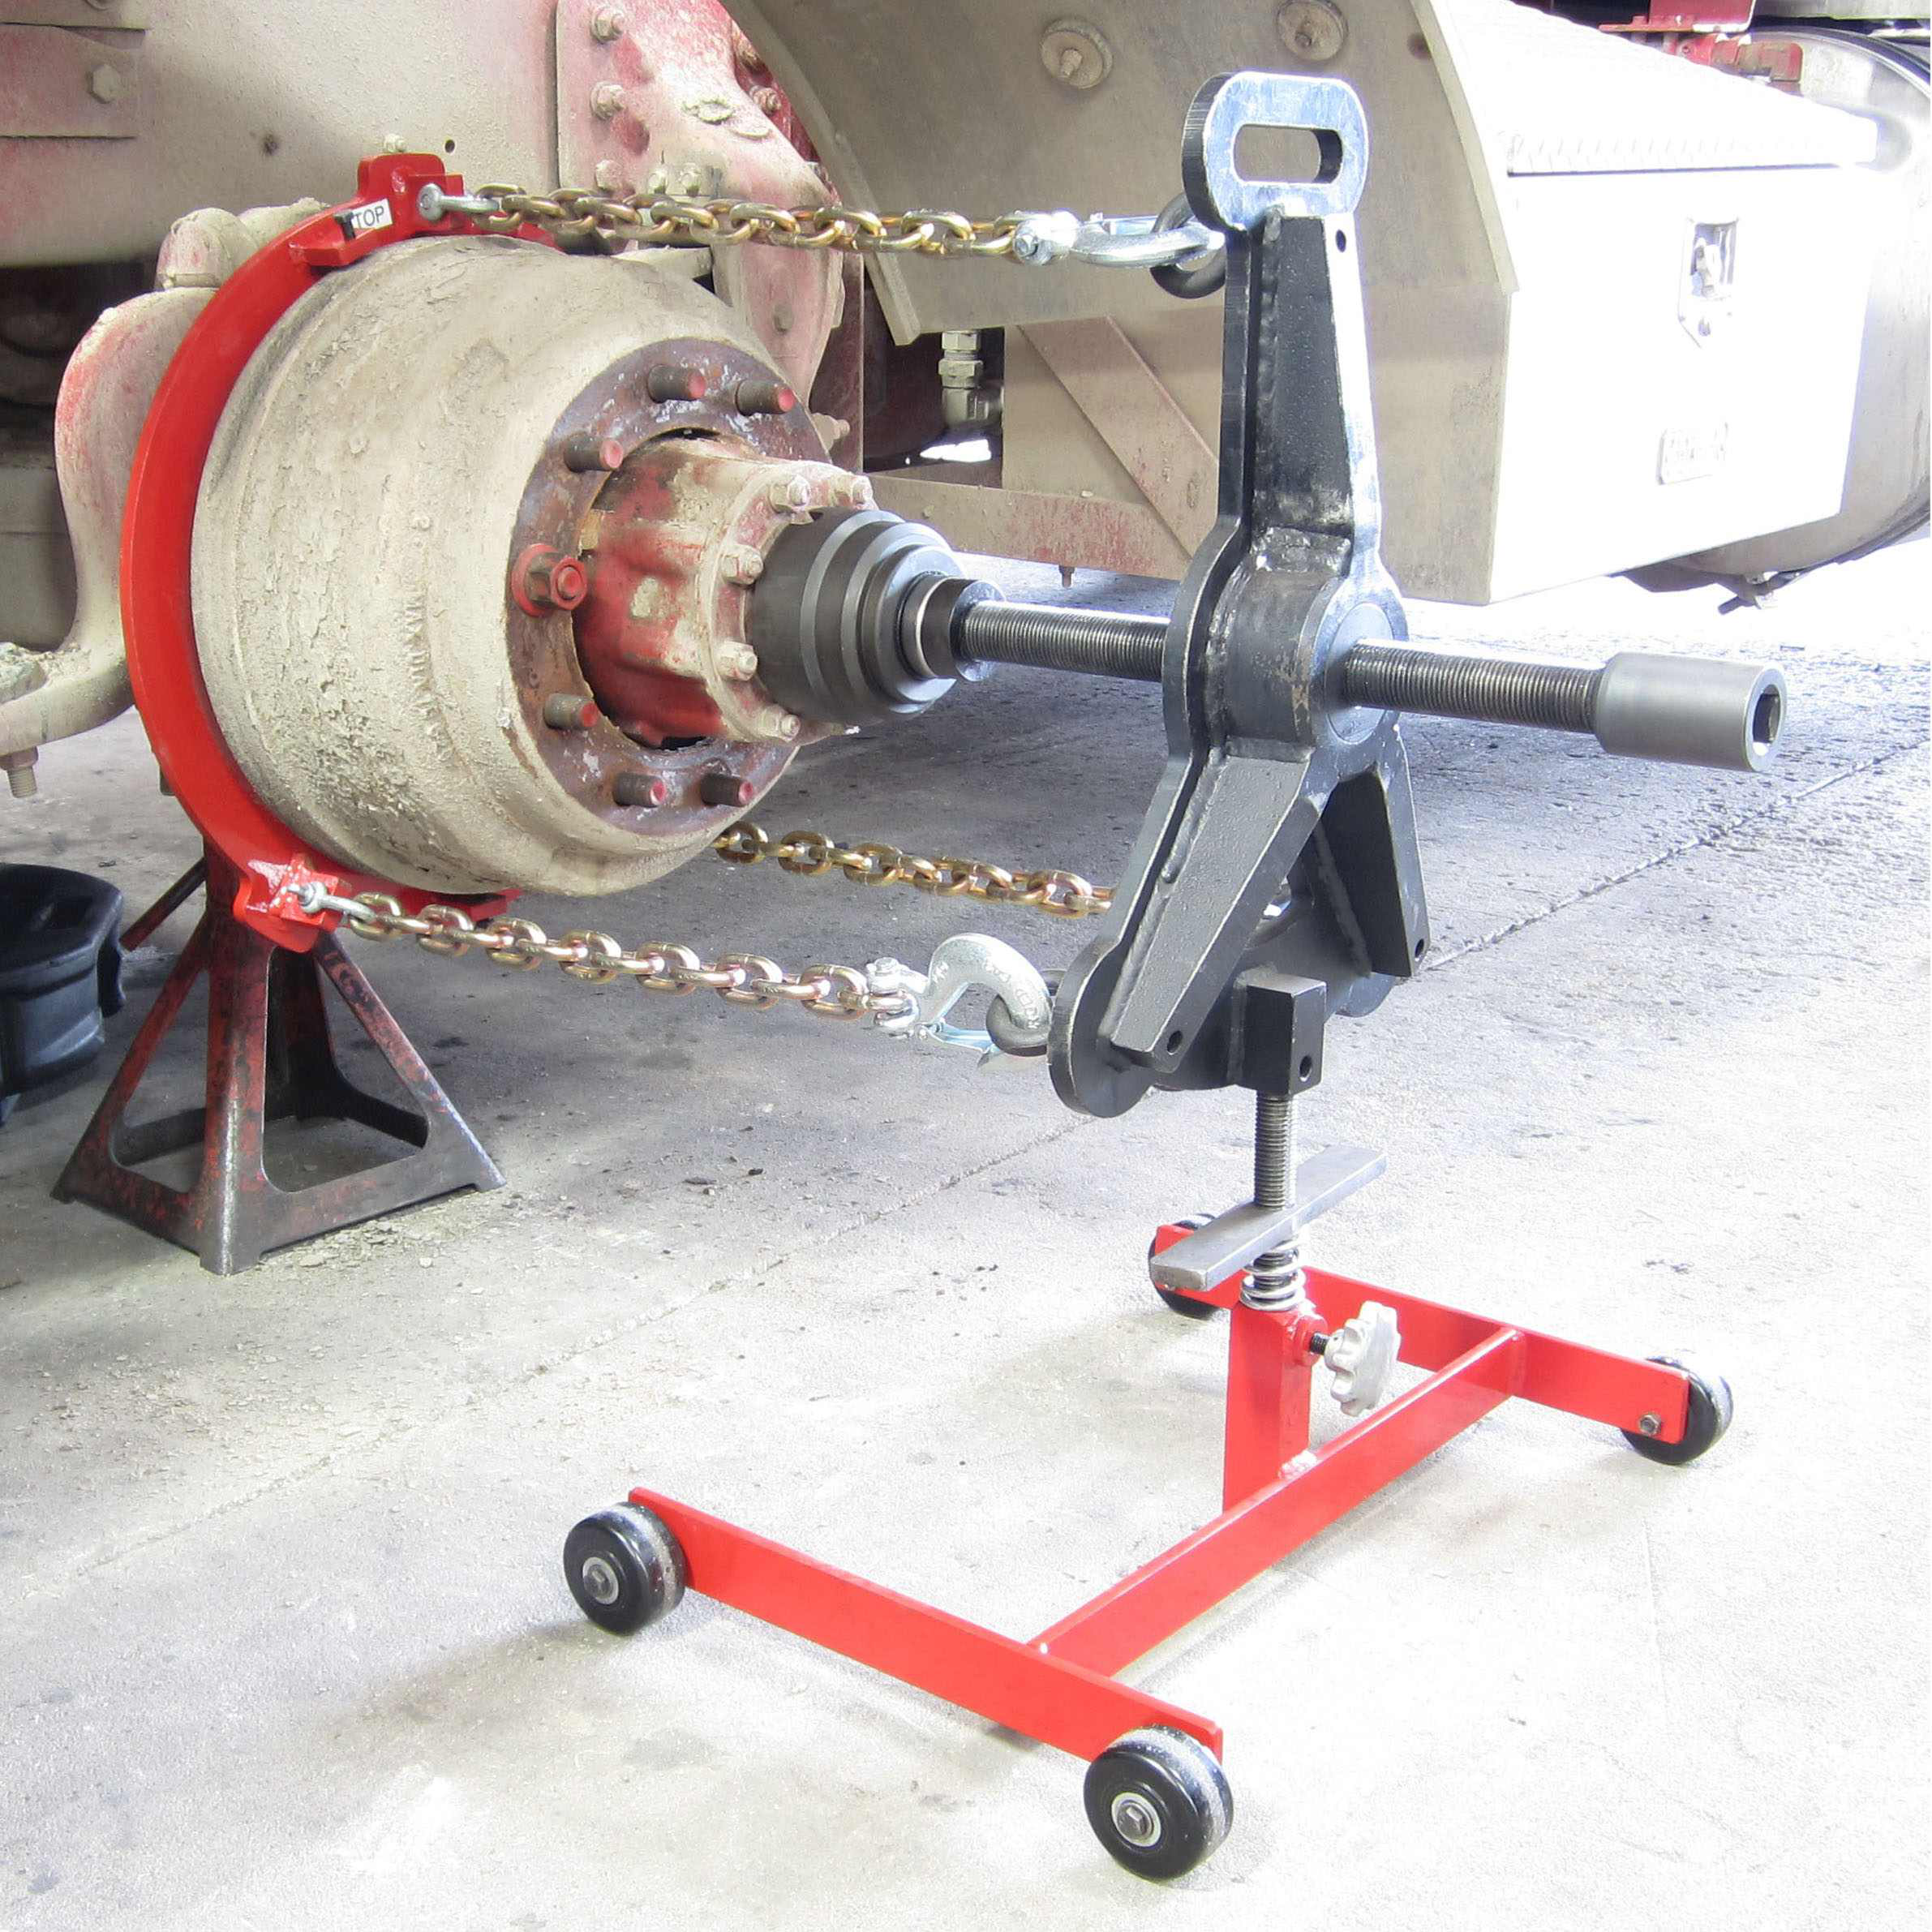 Kiene Diesel Accessories Has Developed A New Tool For Removing Seized Brake Drum